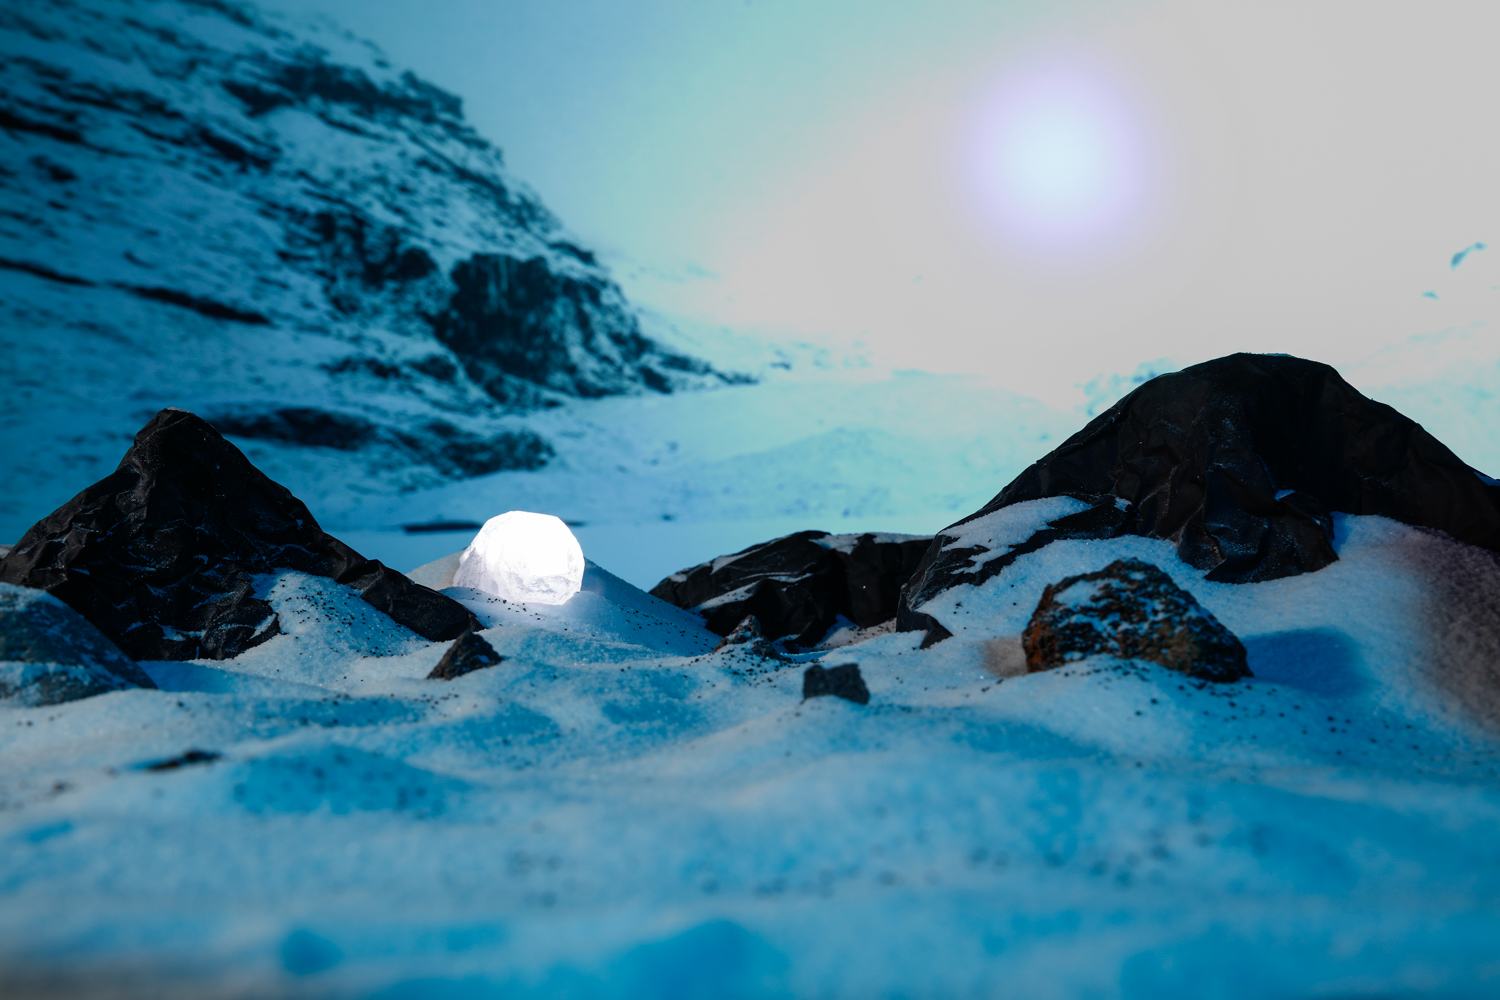 Photograph of an other-worldy snowy scene with glowing orbs